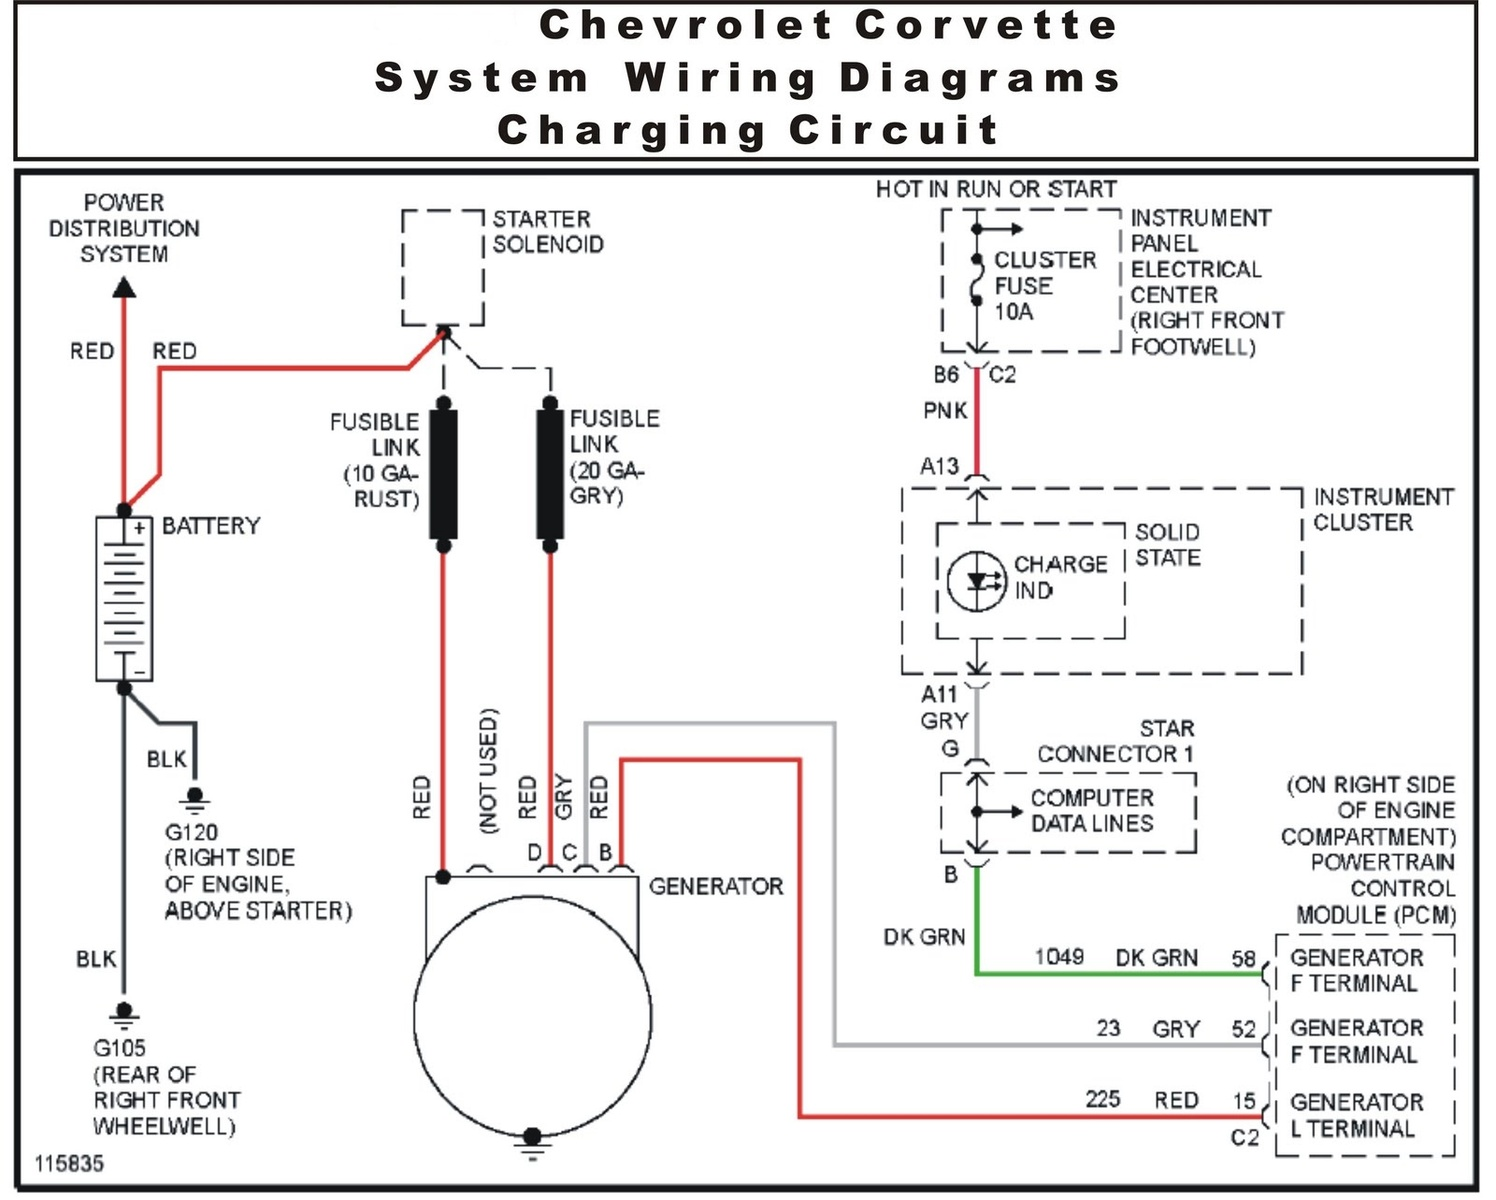 car charging system wiring diagram for light switch uk chevrolet corvette questions i need to know the